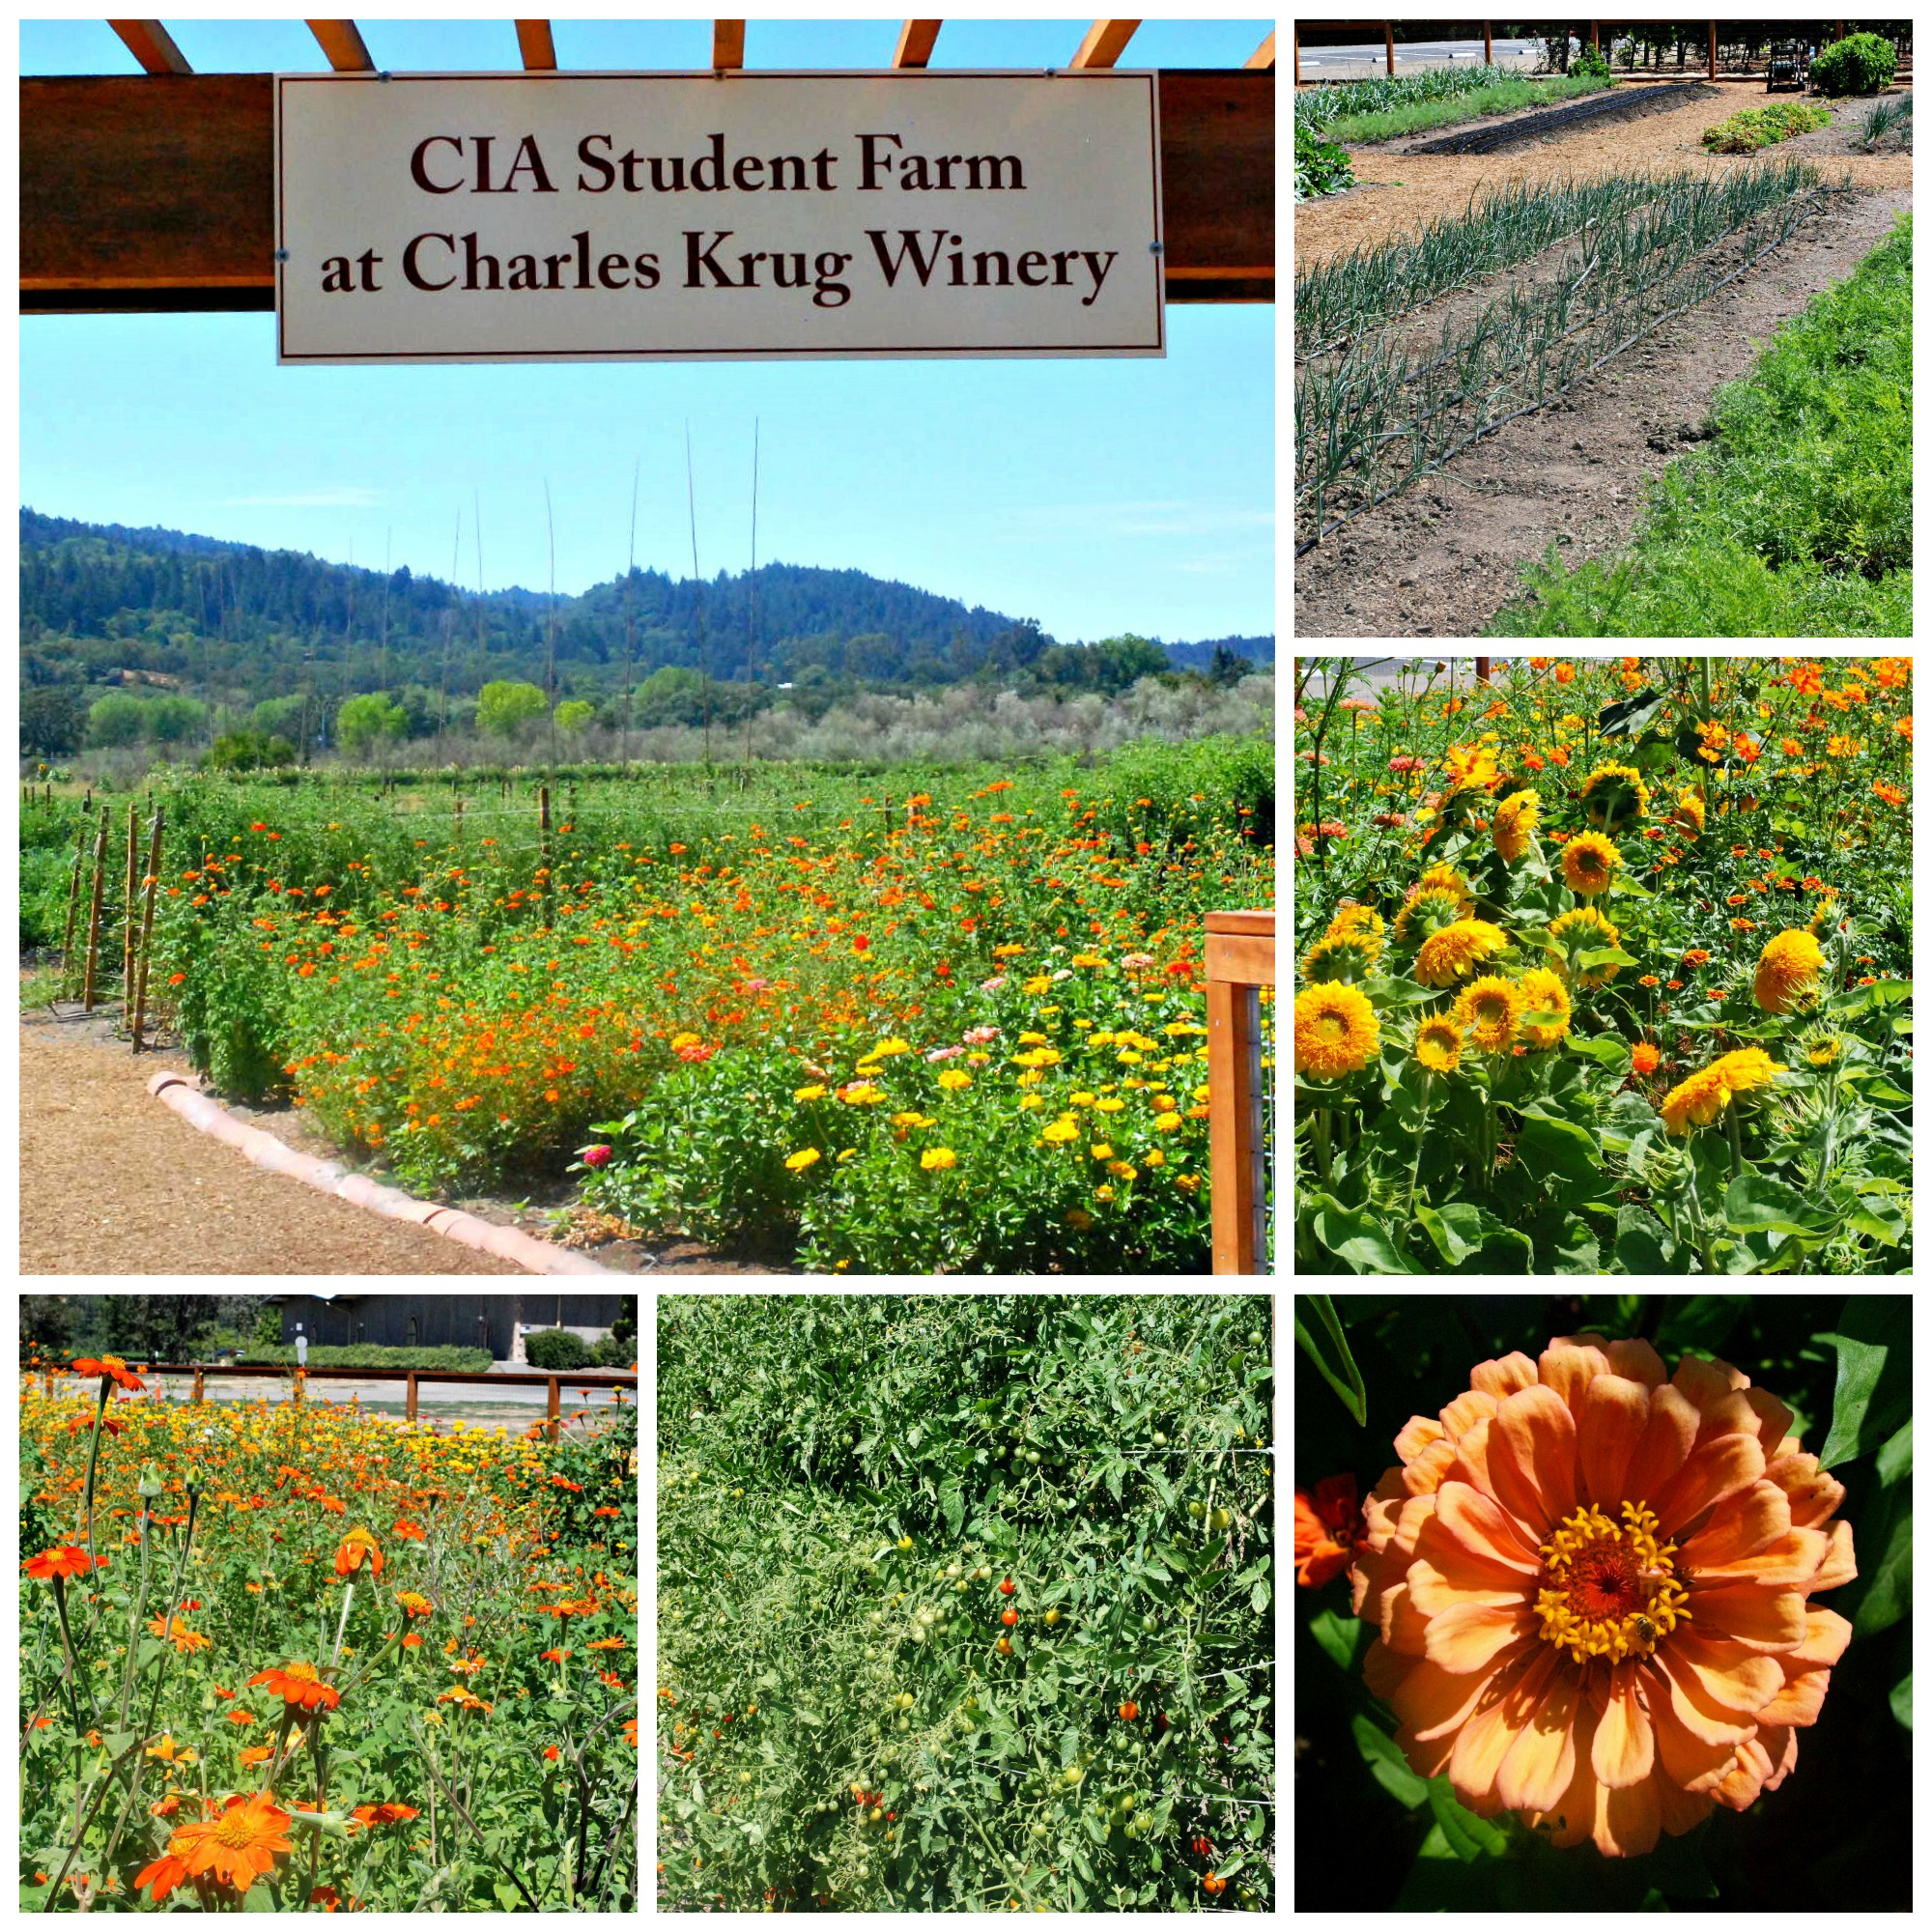 Culinary Institute of America student farm at Charles Krug